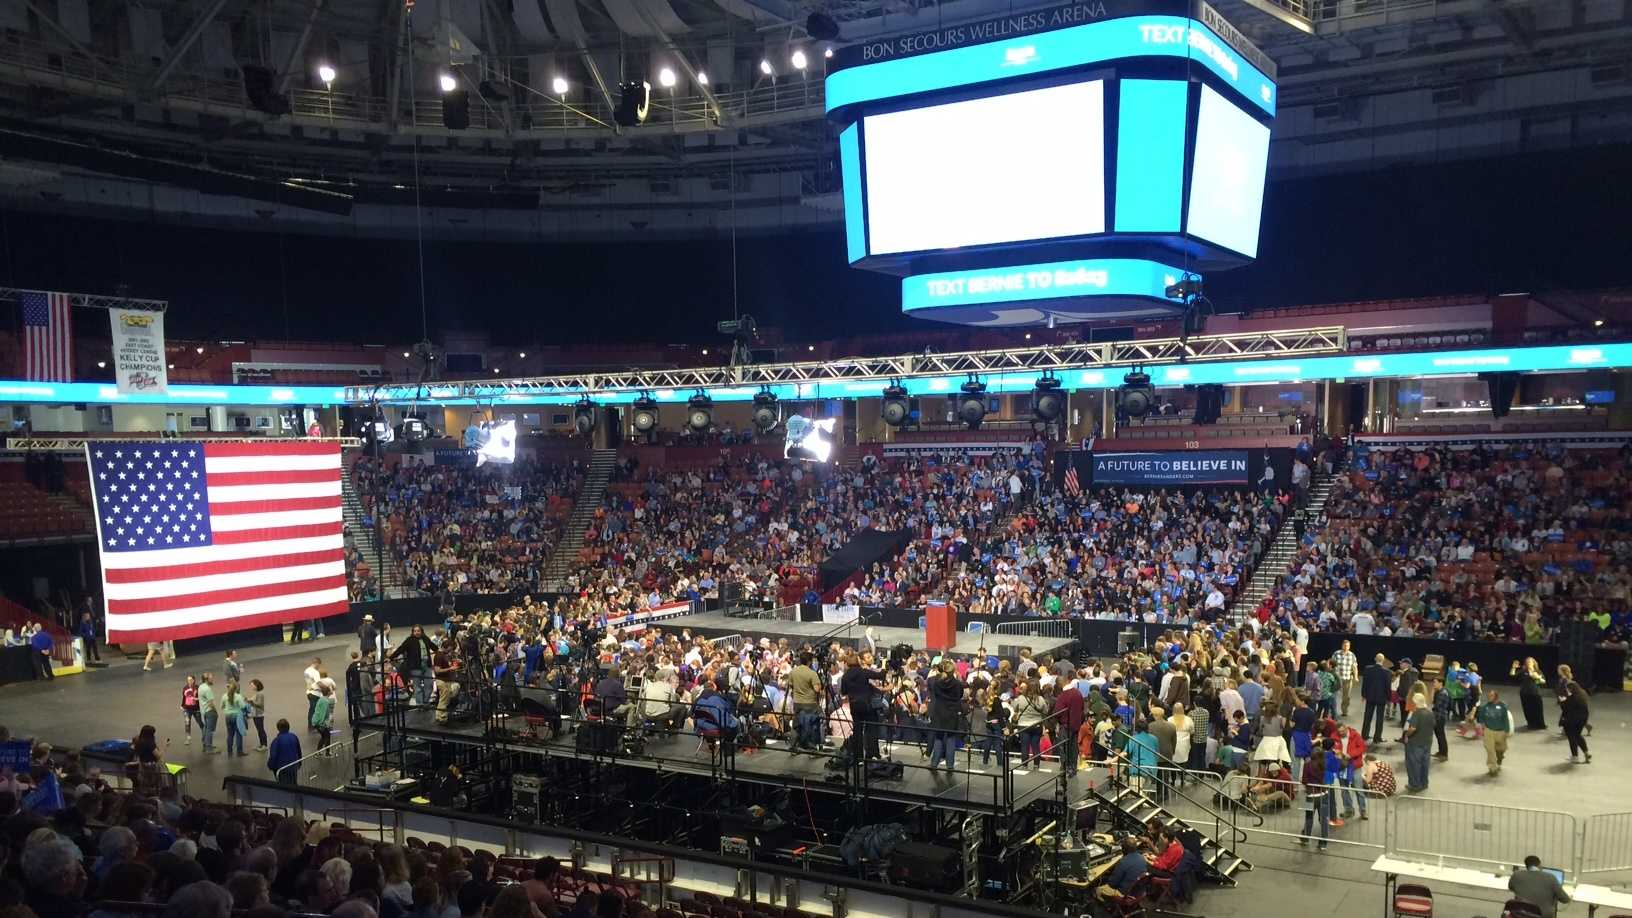 Thousands rally for Bernie Sanders at Bon Secours Wellness Arena